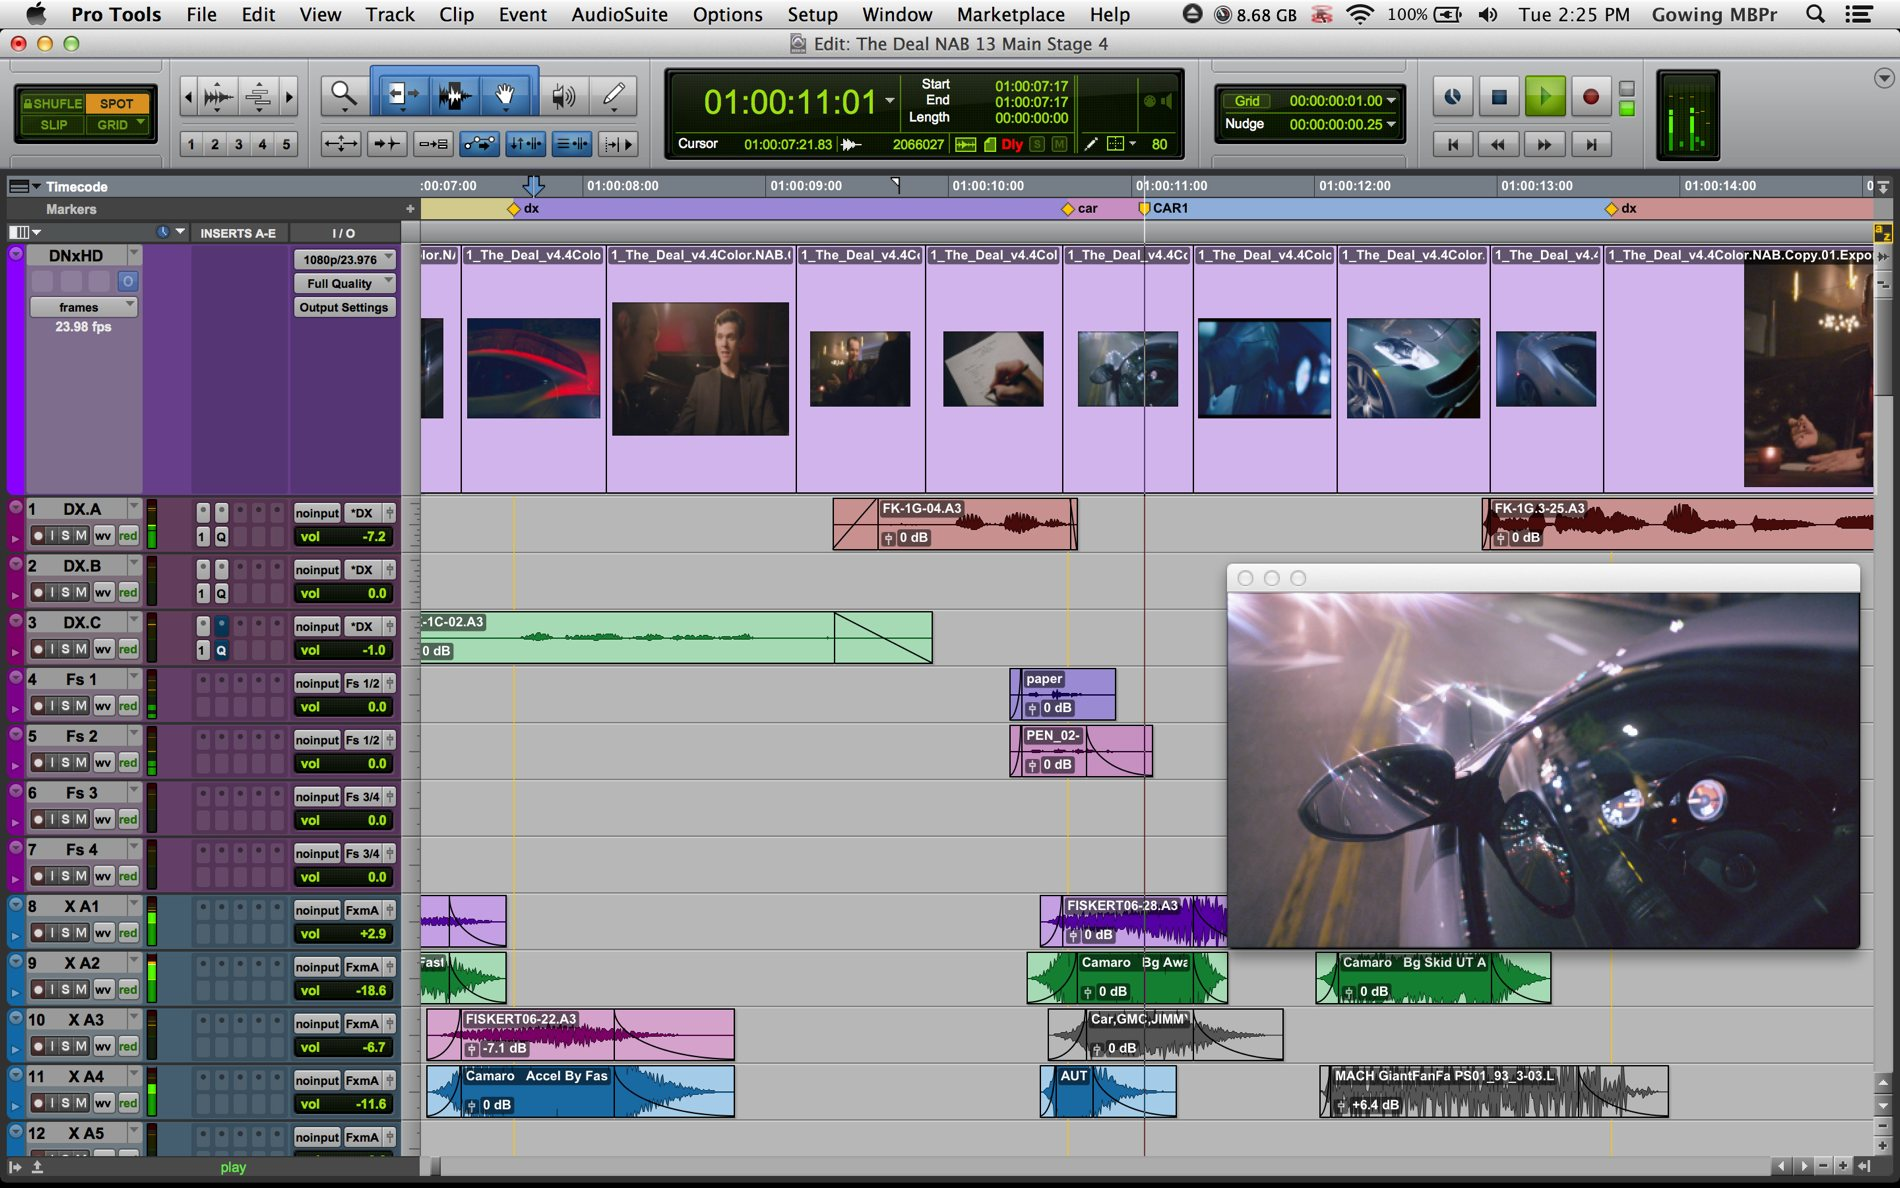 Pro Tools Screenshot -Choosing A Digital Audio Workstation (DAW)